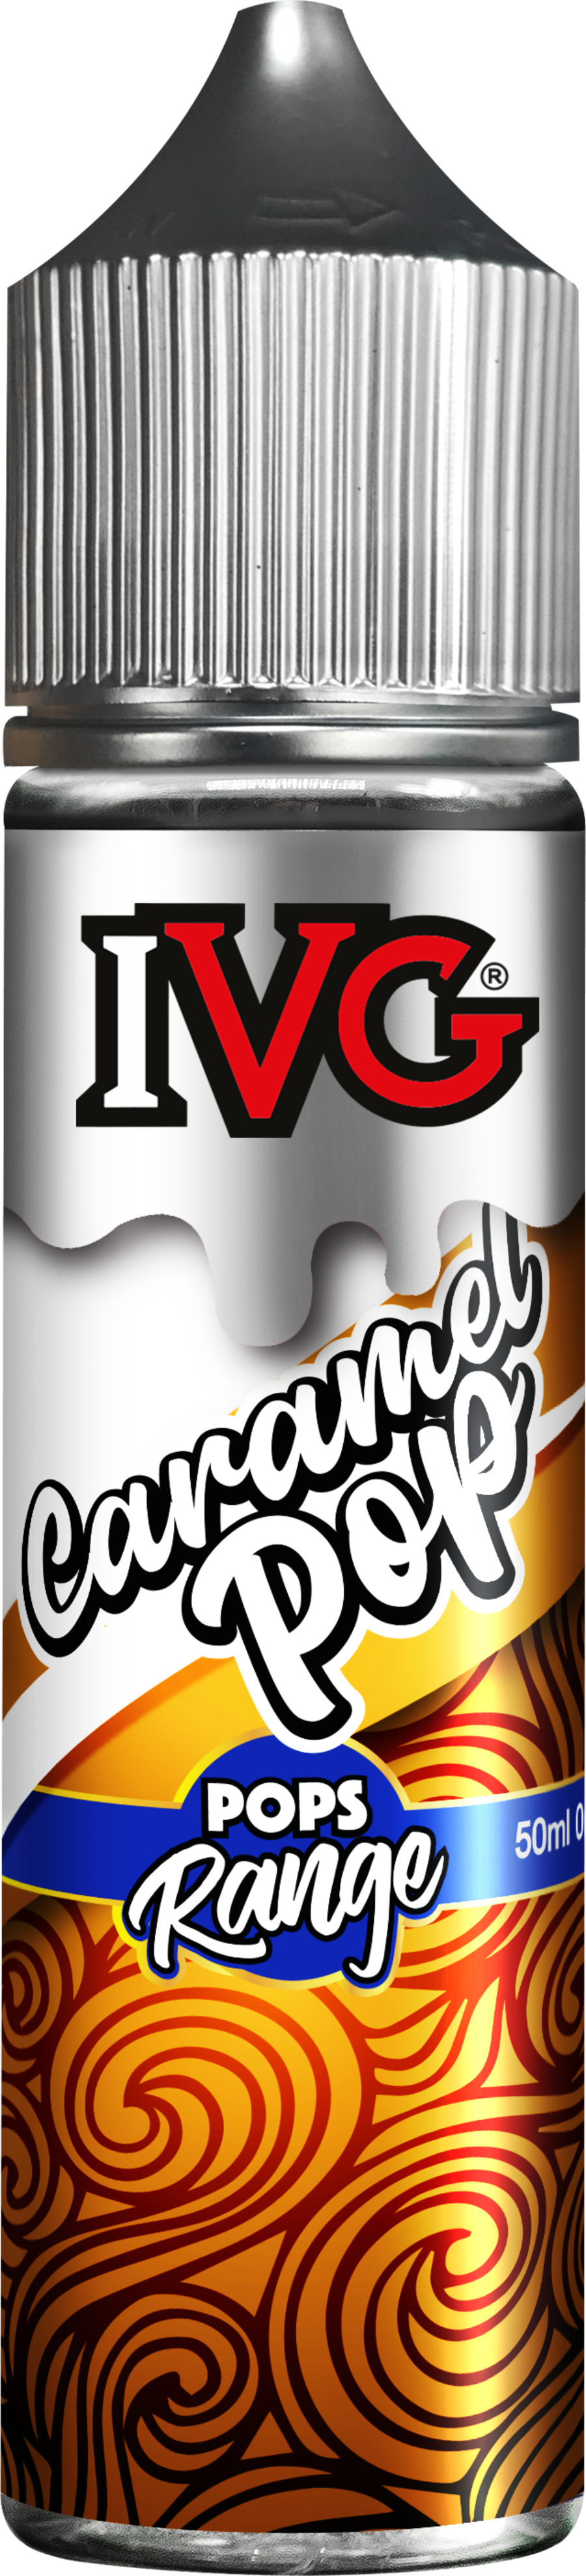 Caramel pop by I VG Pops 50ml